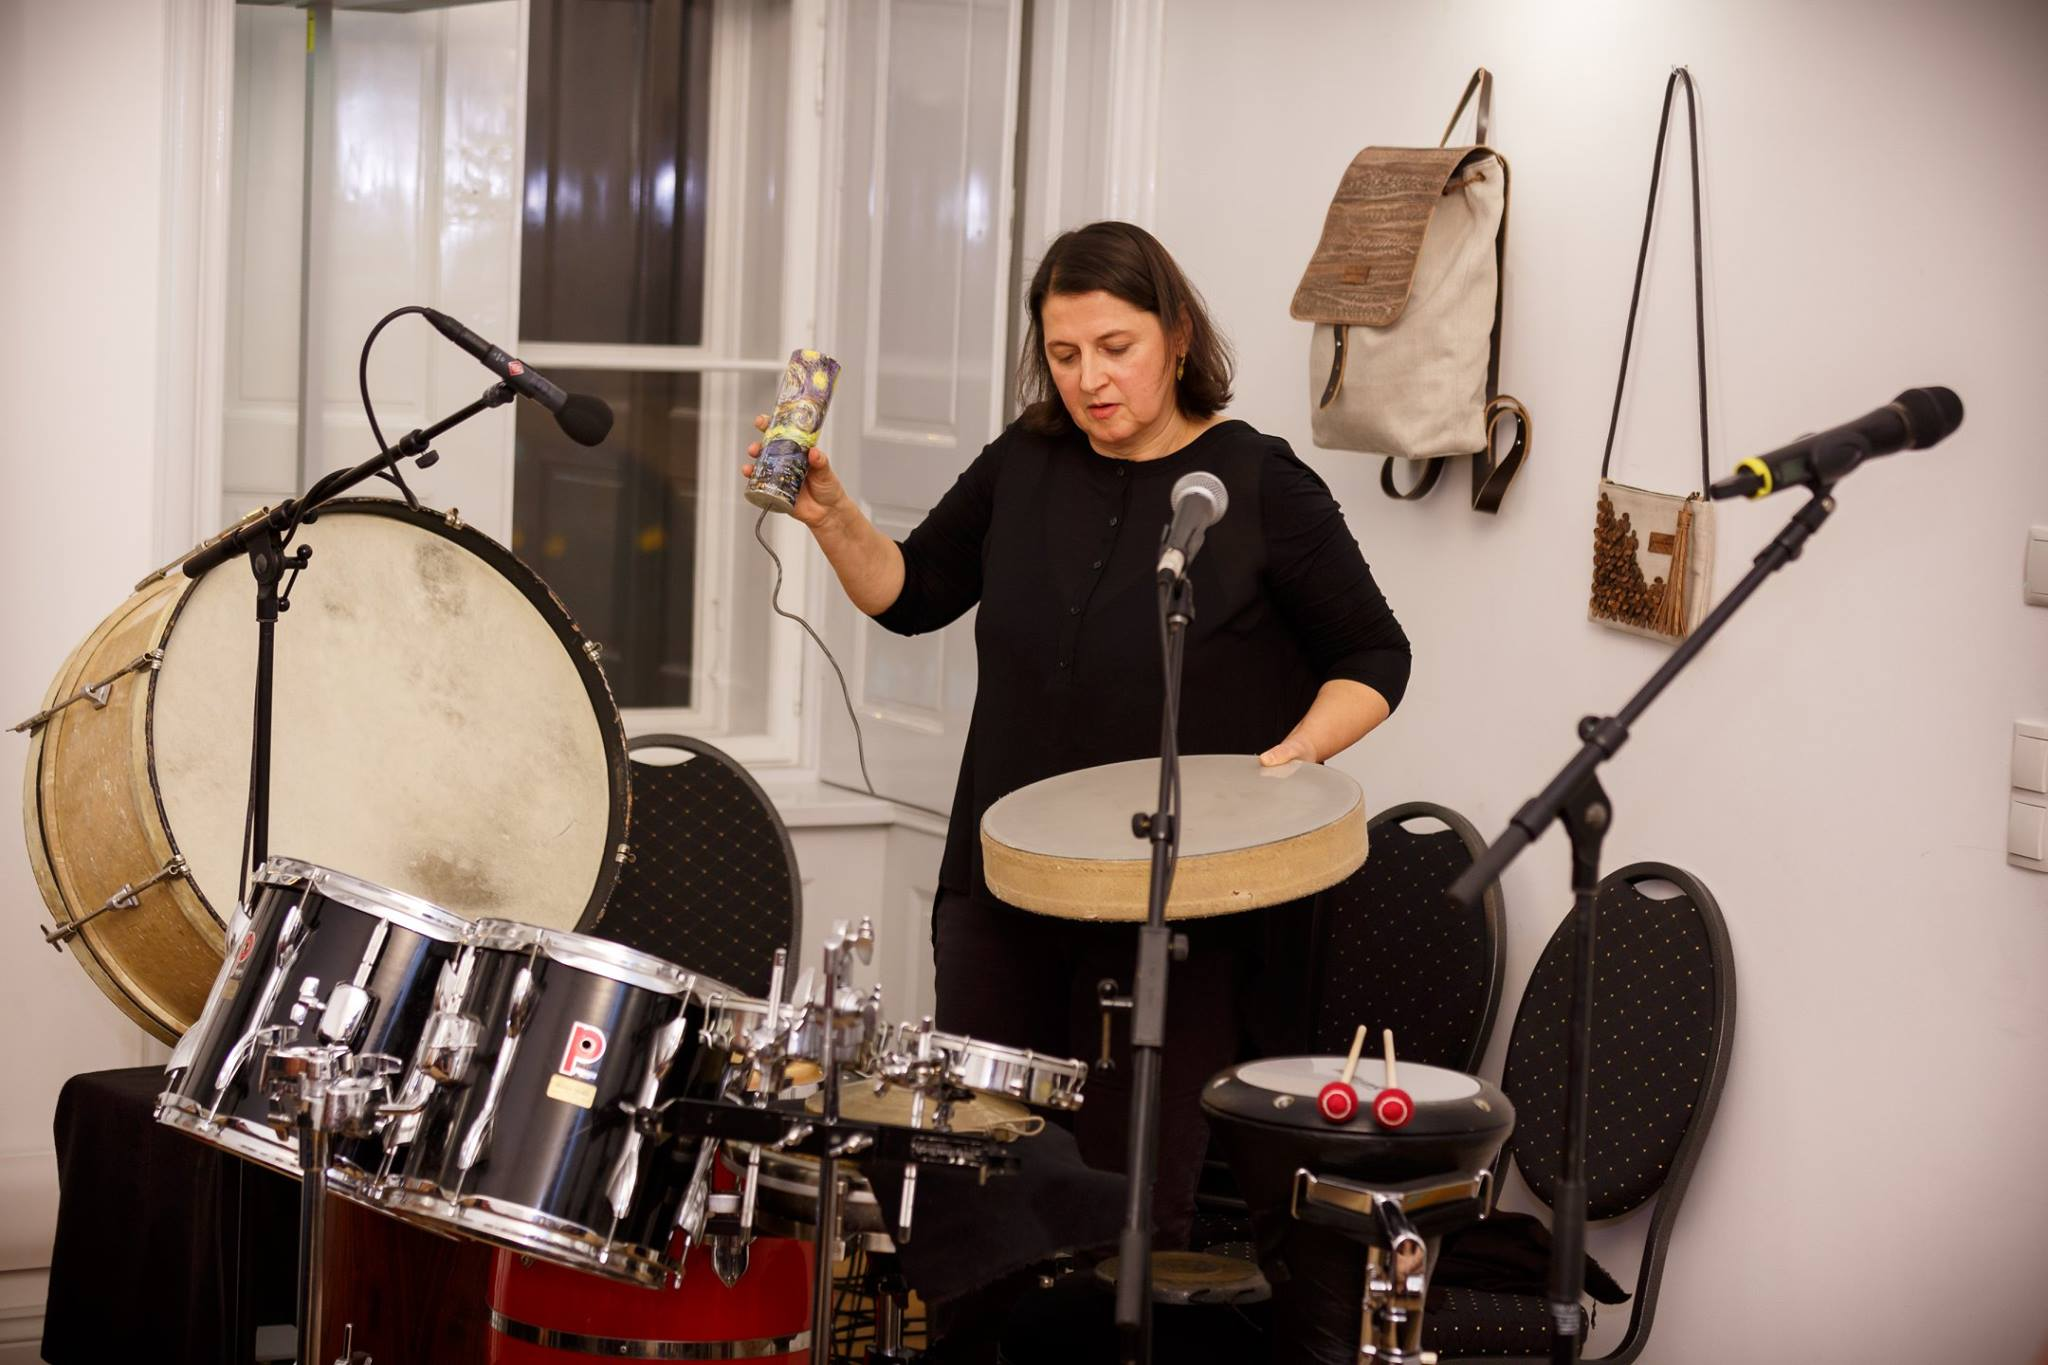 Percussionistin Ingrid Oberkanins bei Galerie Immobilien am 5. 12. 2018